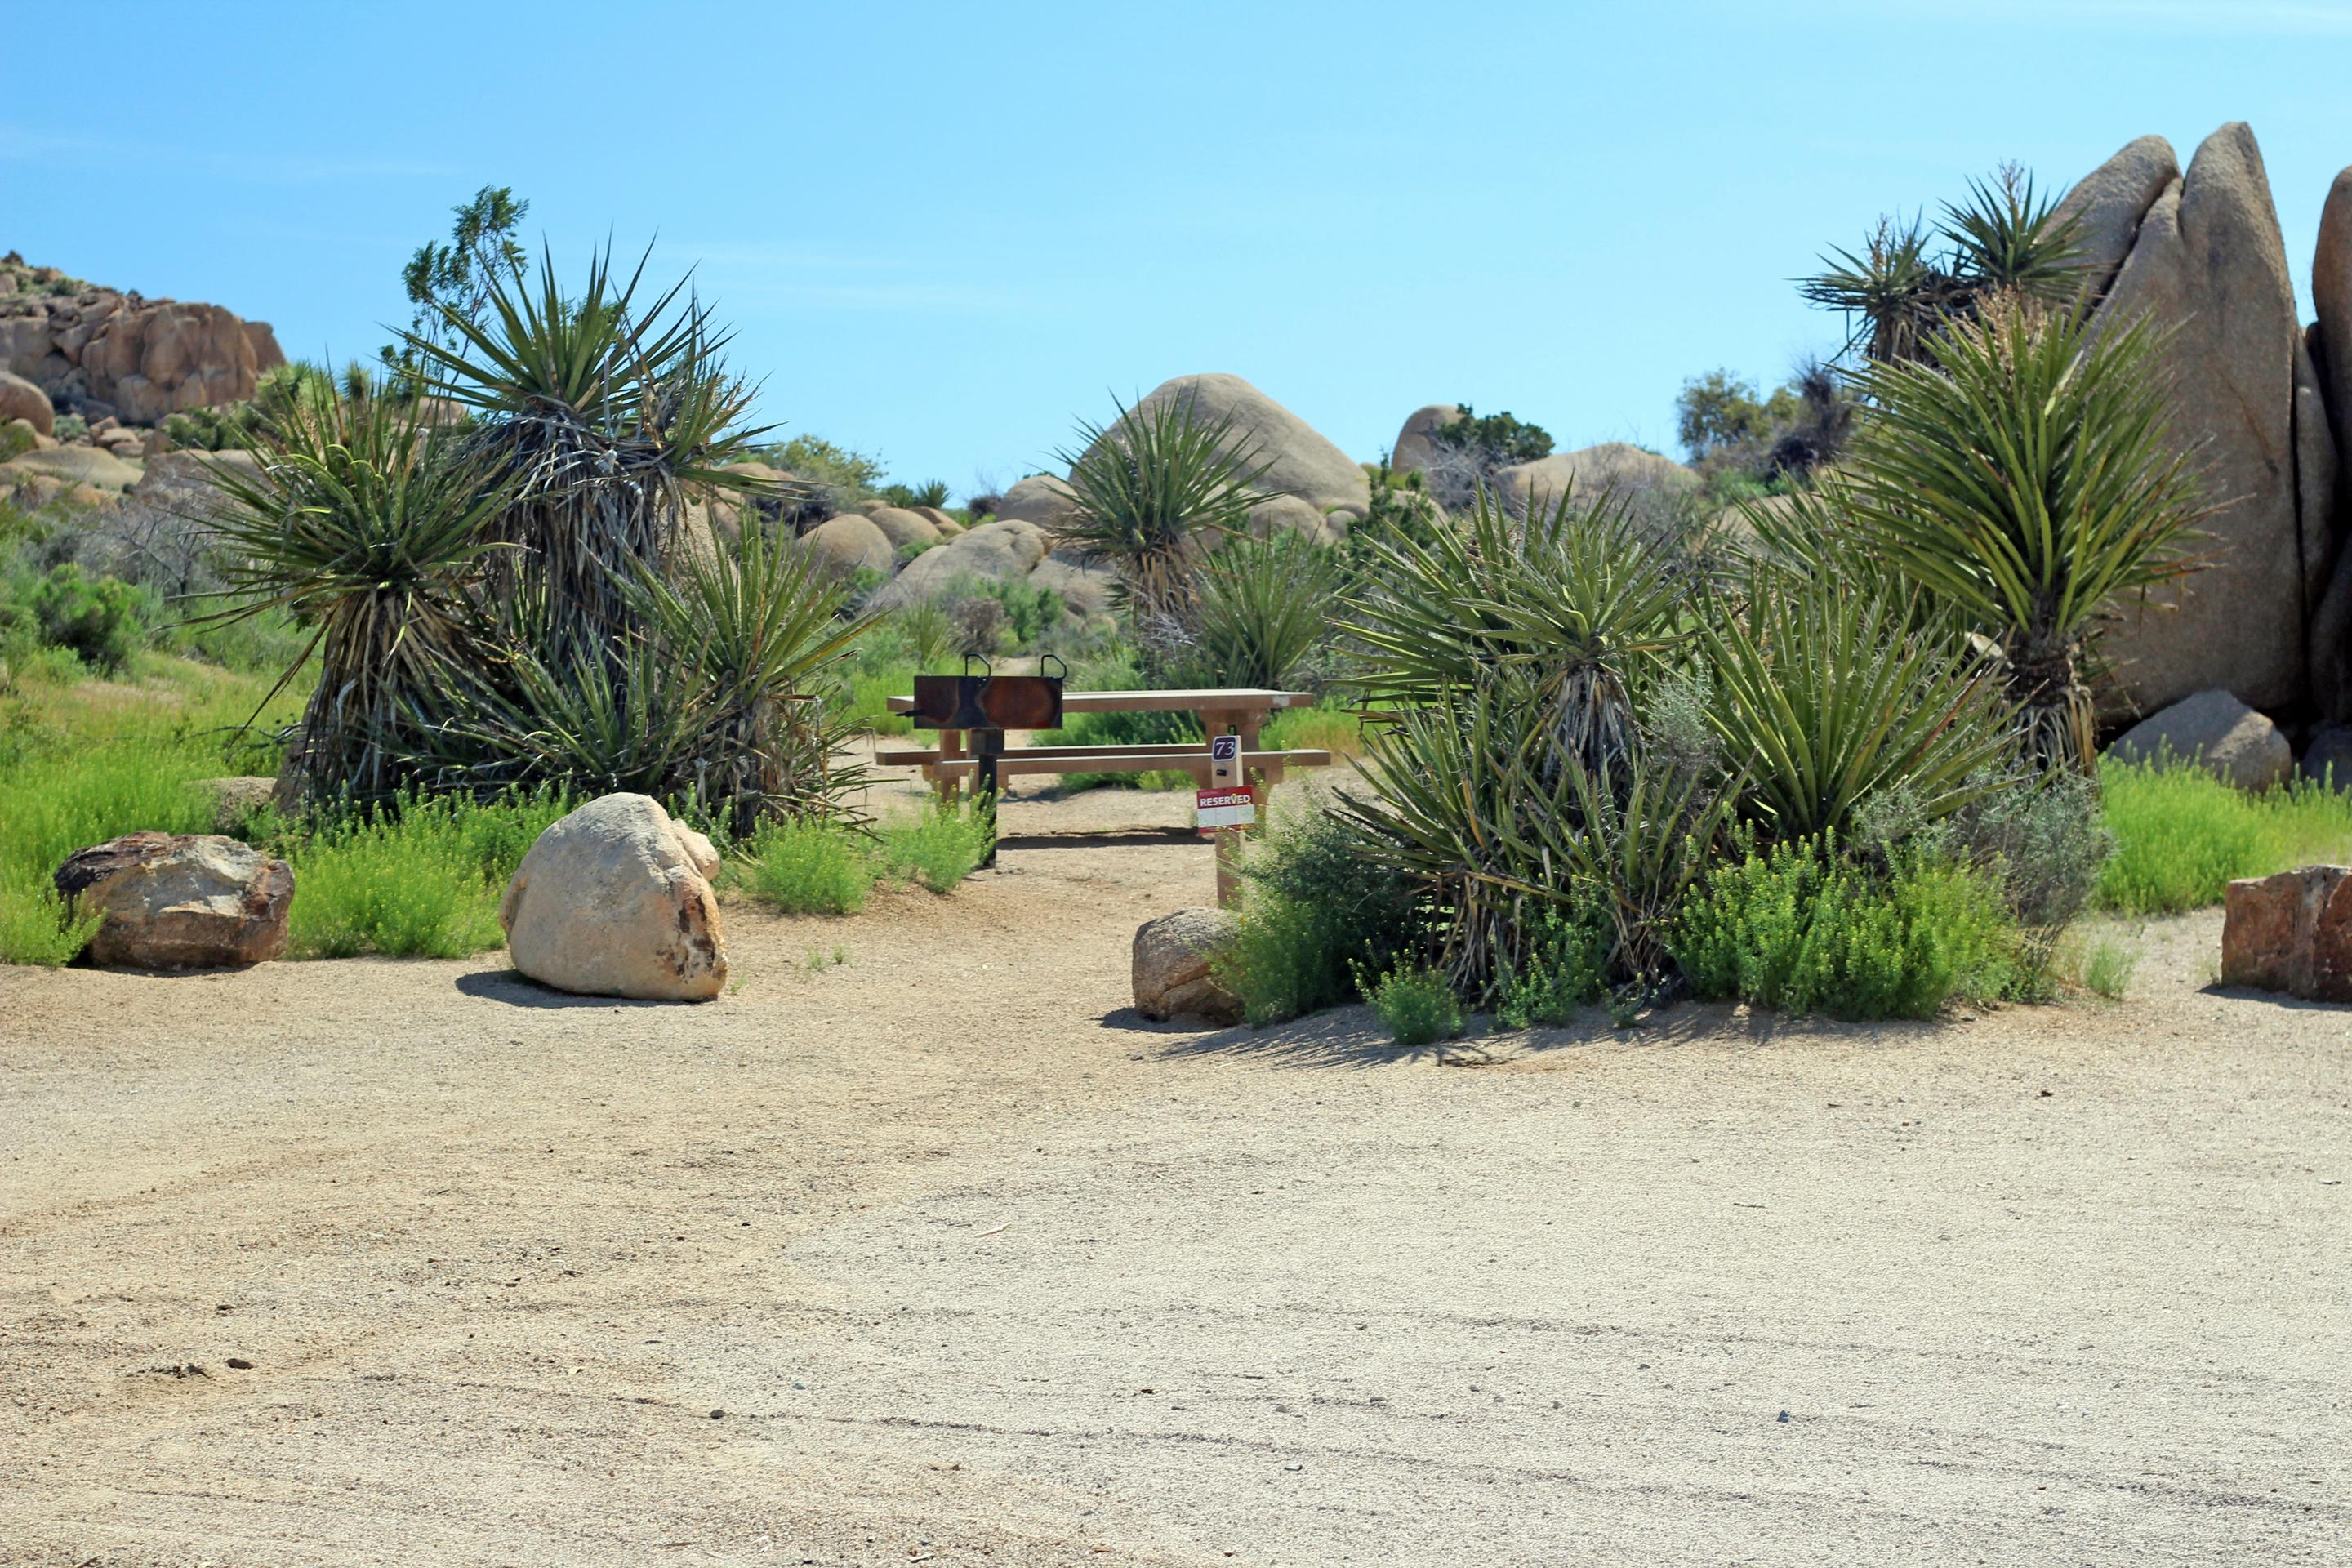 Shared parking for campsite. Picnic table surrounded by boulders and green plants.Parking and campsite.